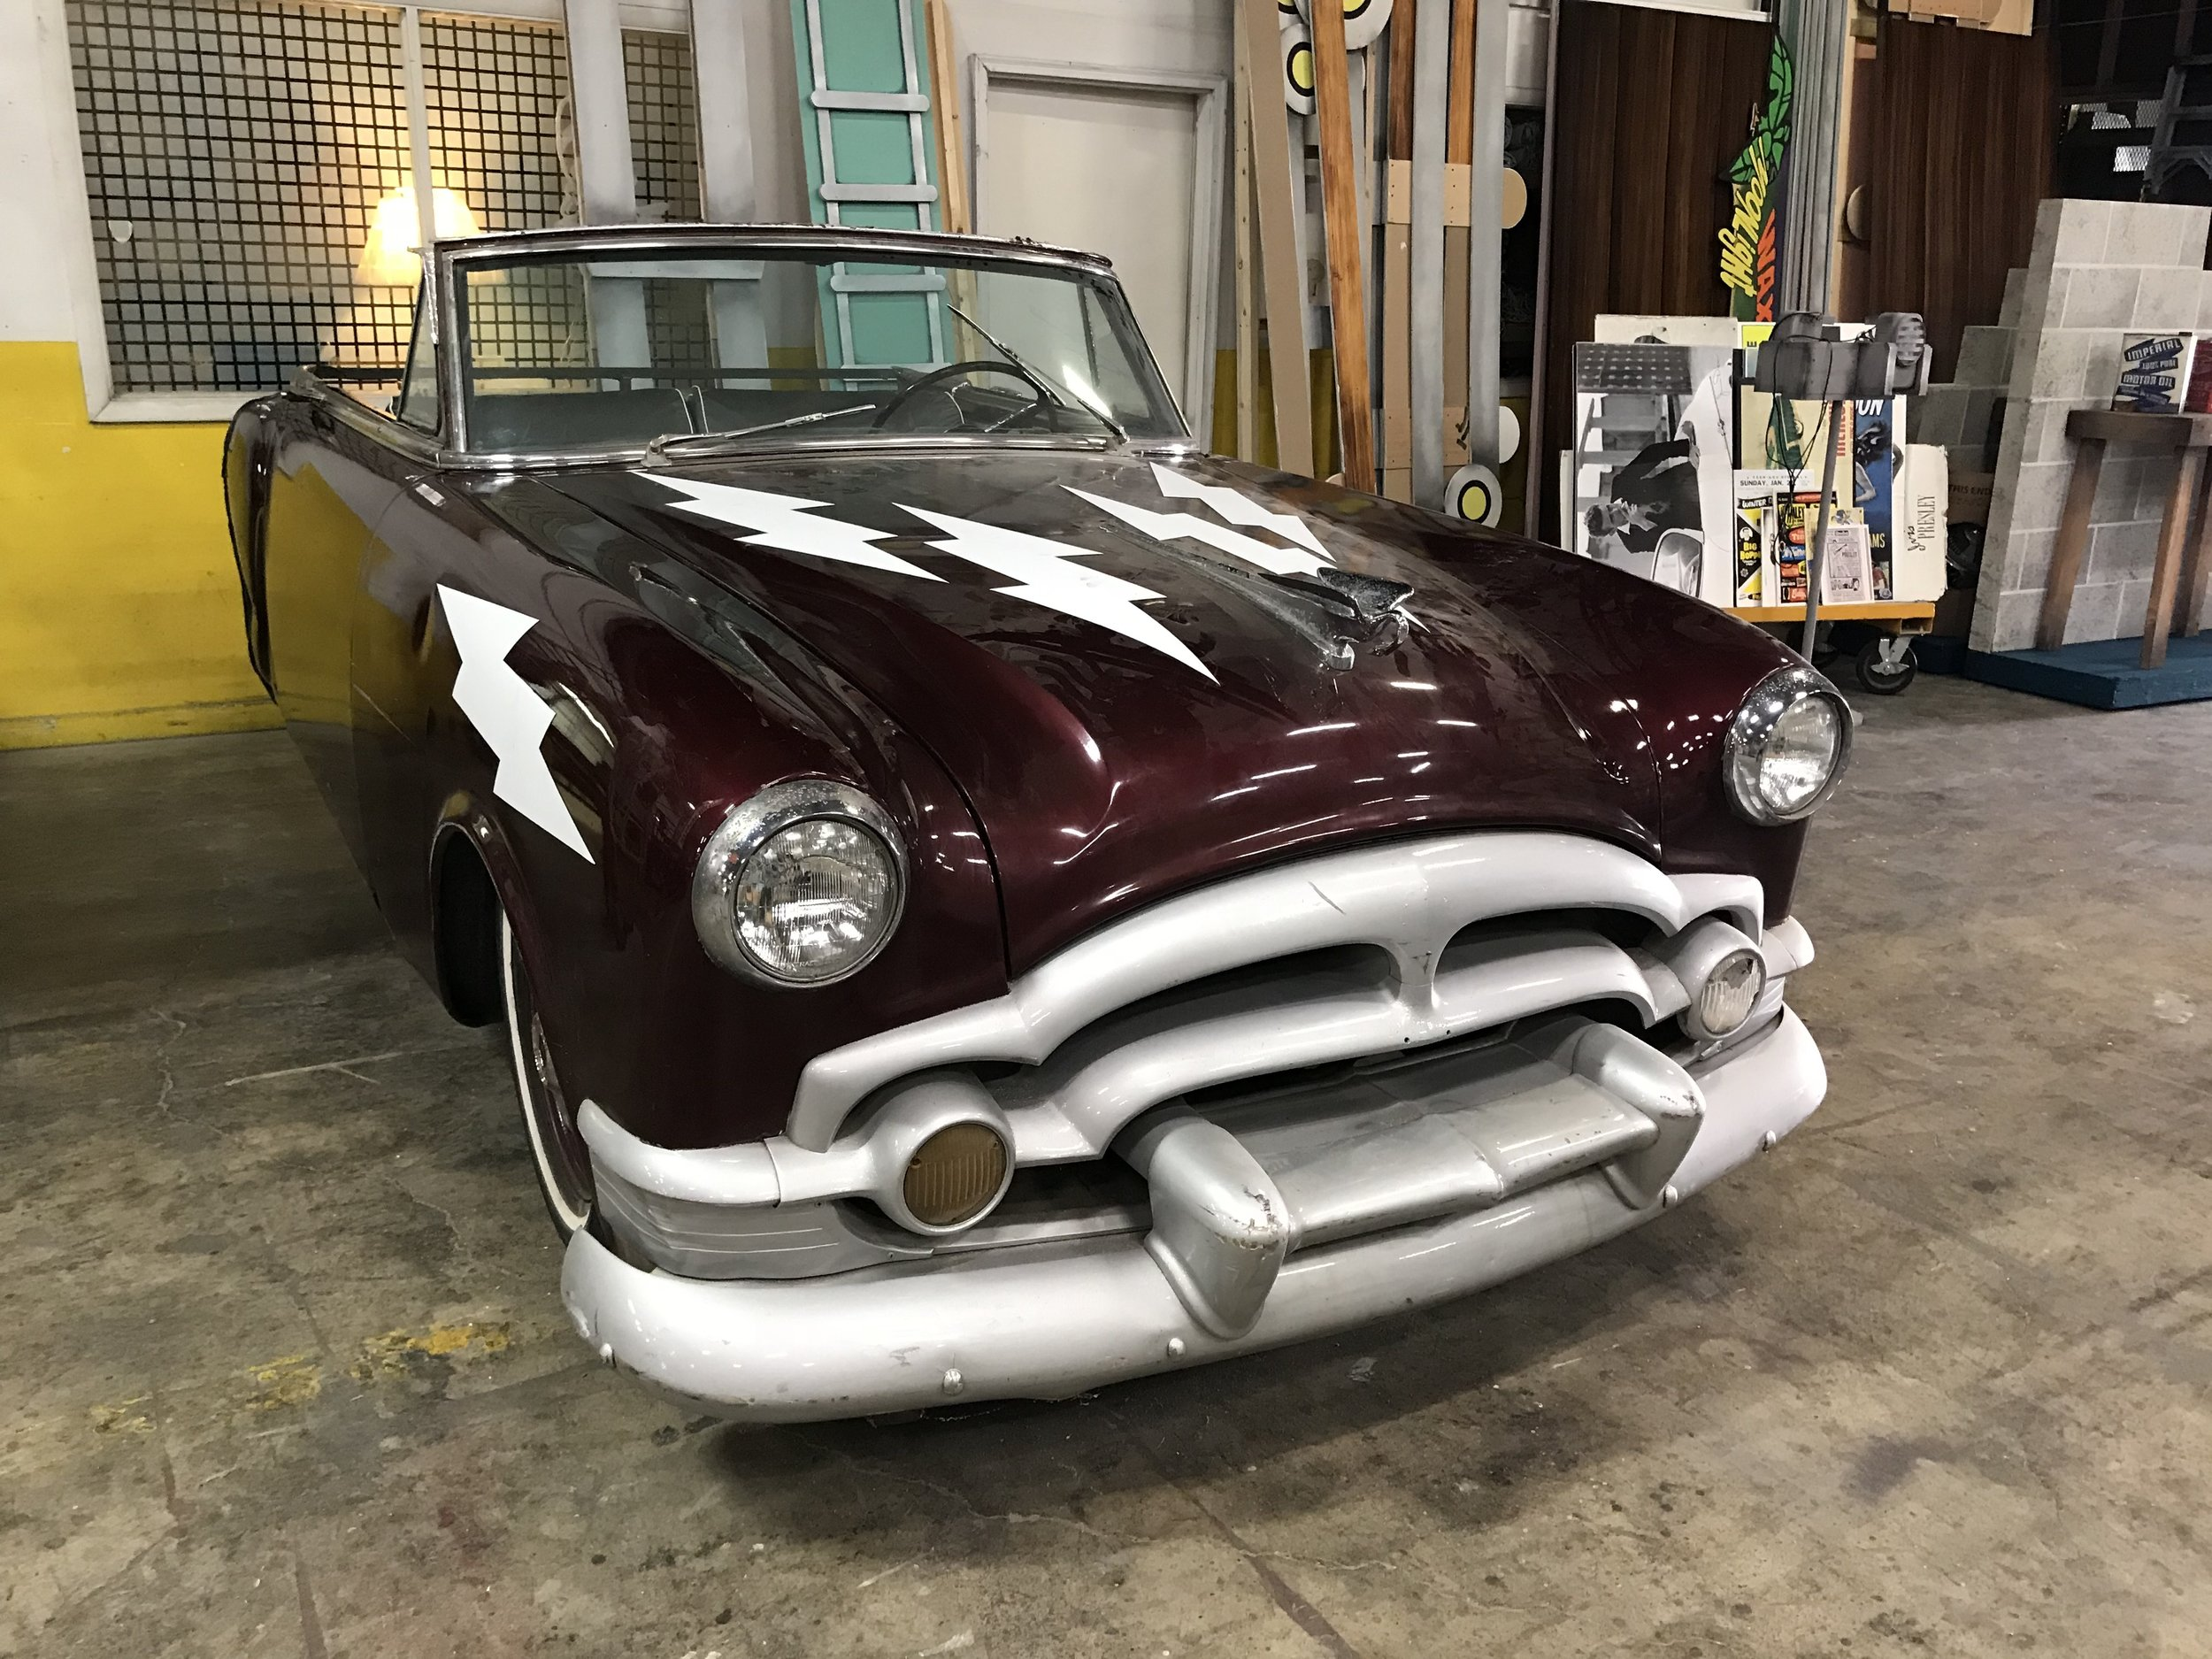 The front end of the Packard prop.